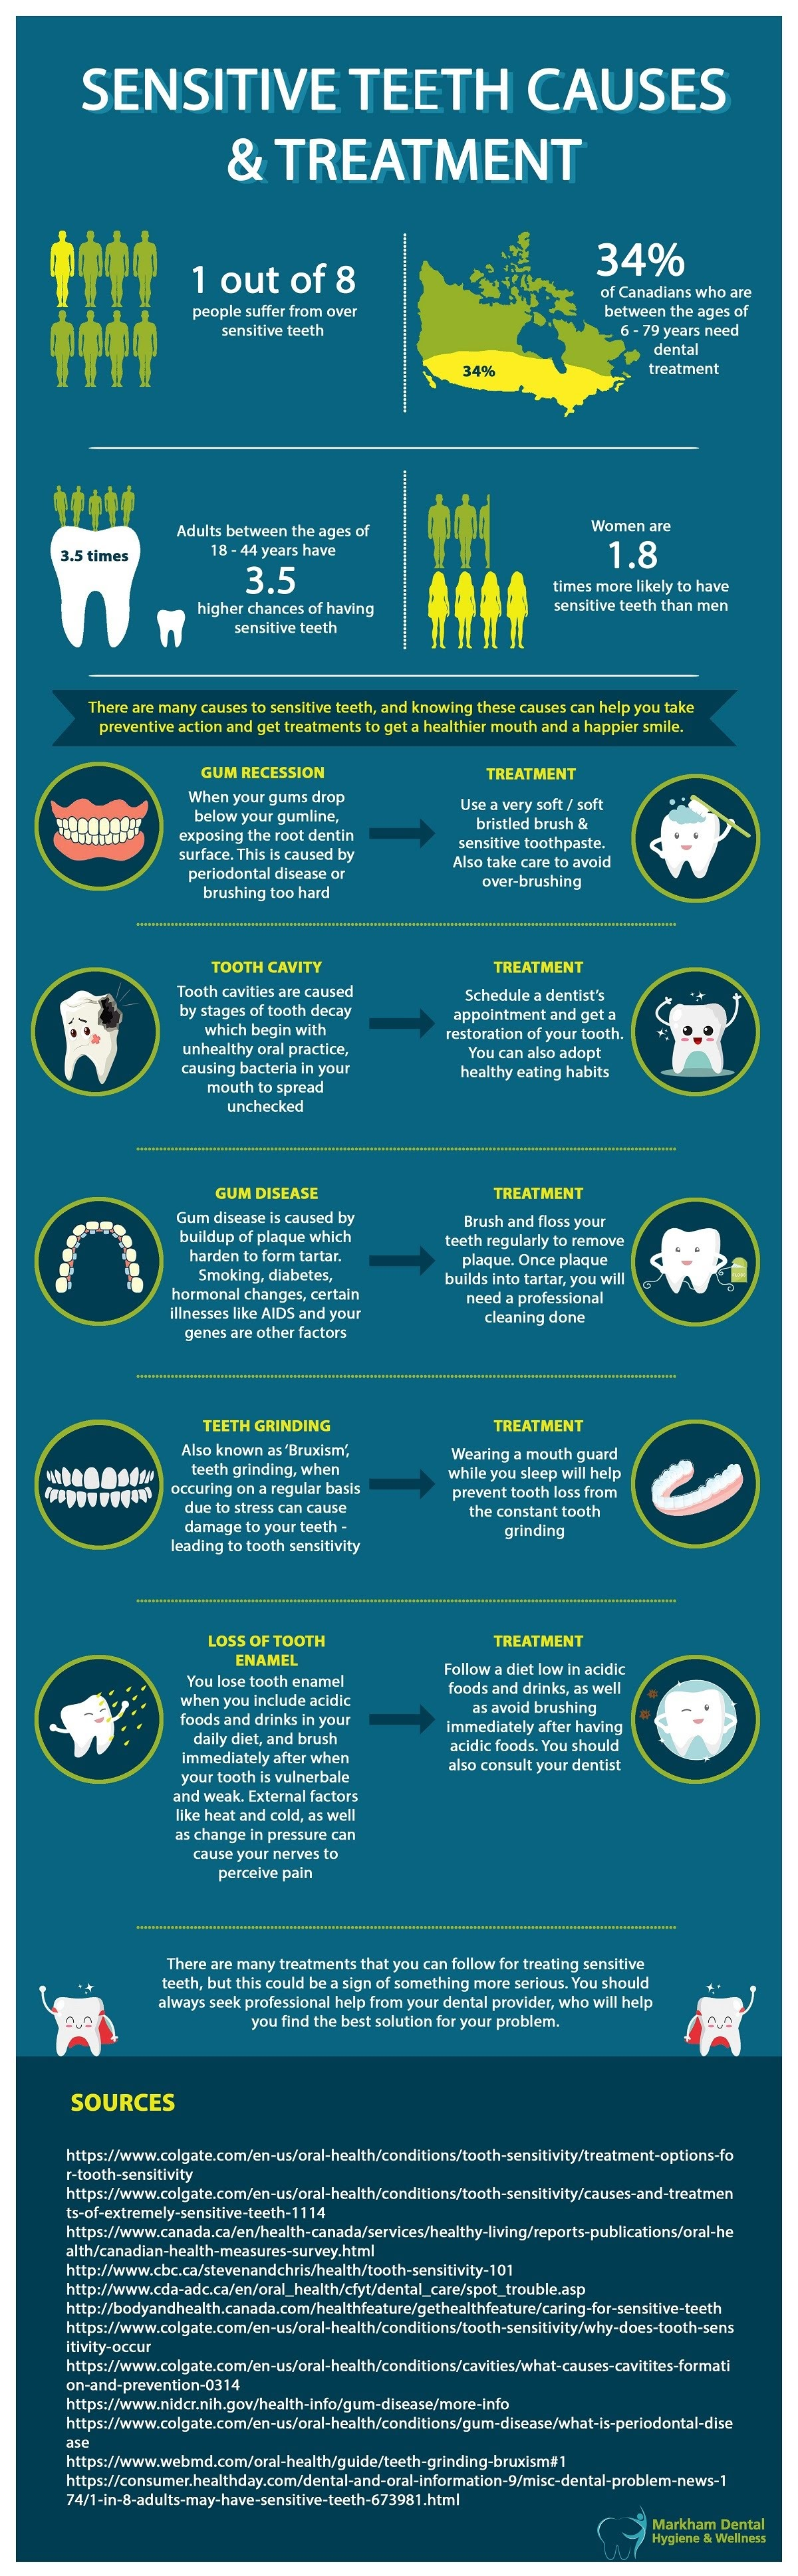 Sensitive Teeth Causes & Treatment #infographic